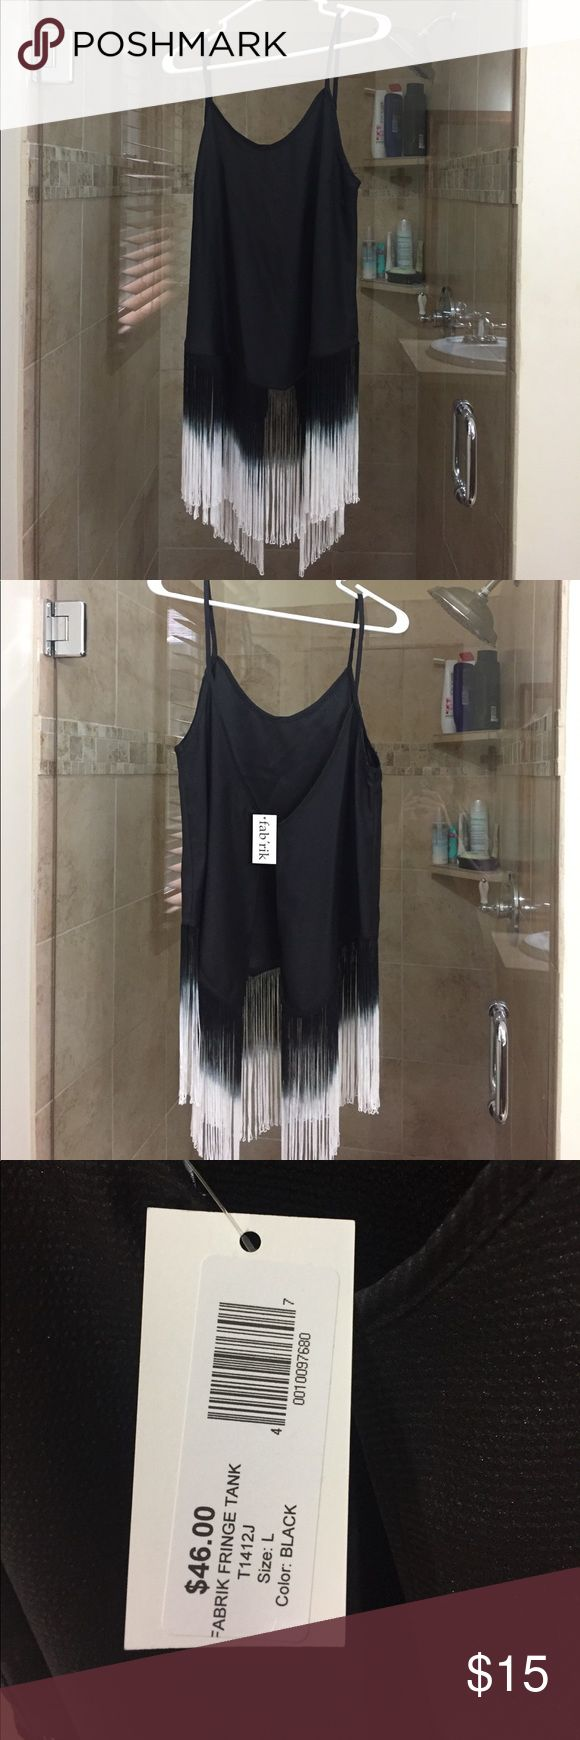 NWT- black backless fringe tank top Size large black fringe backless tank top. NWT fabrik Tops Tank Tops